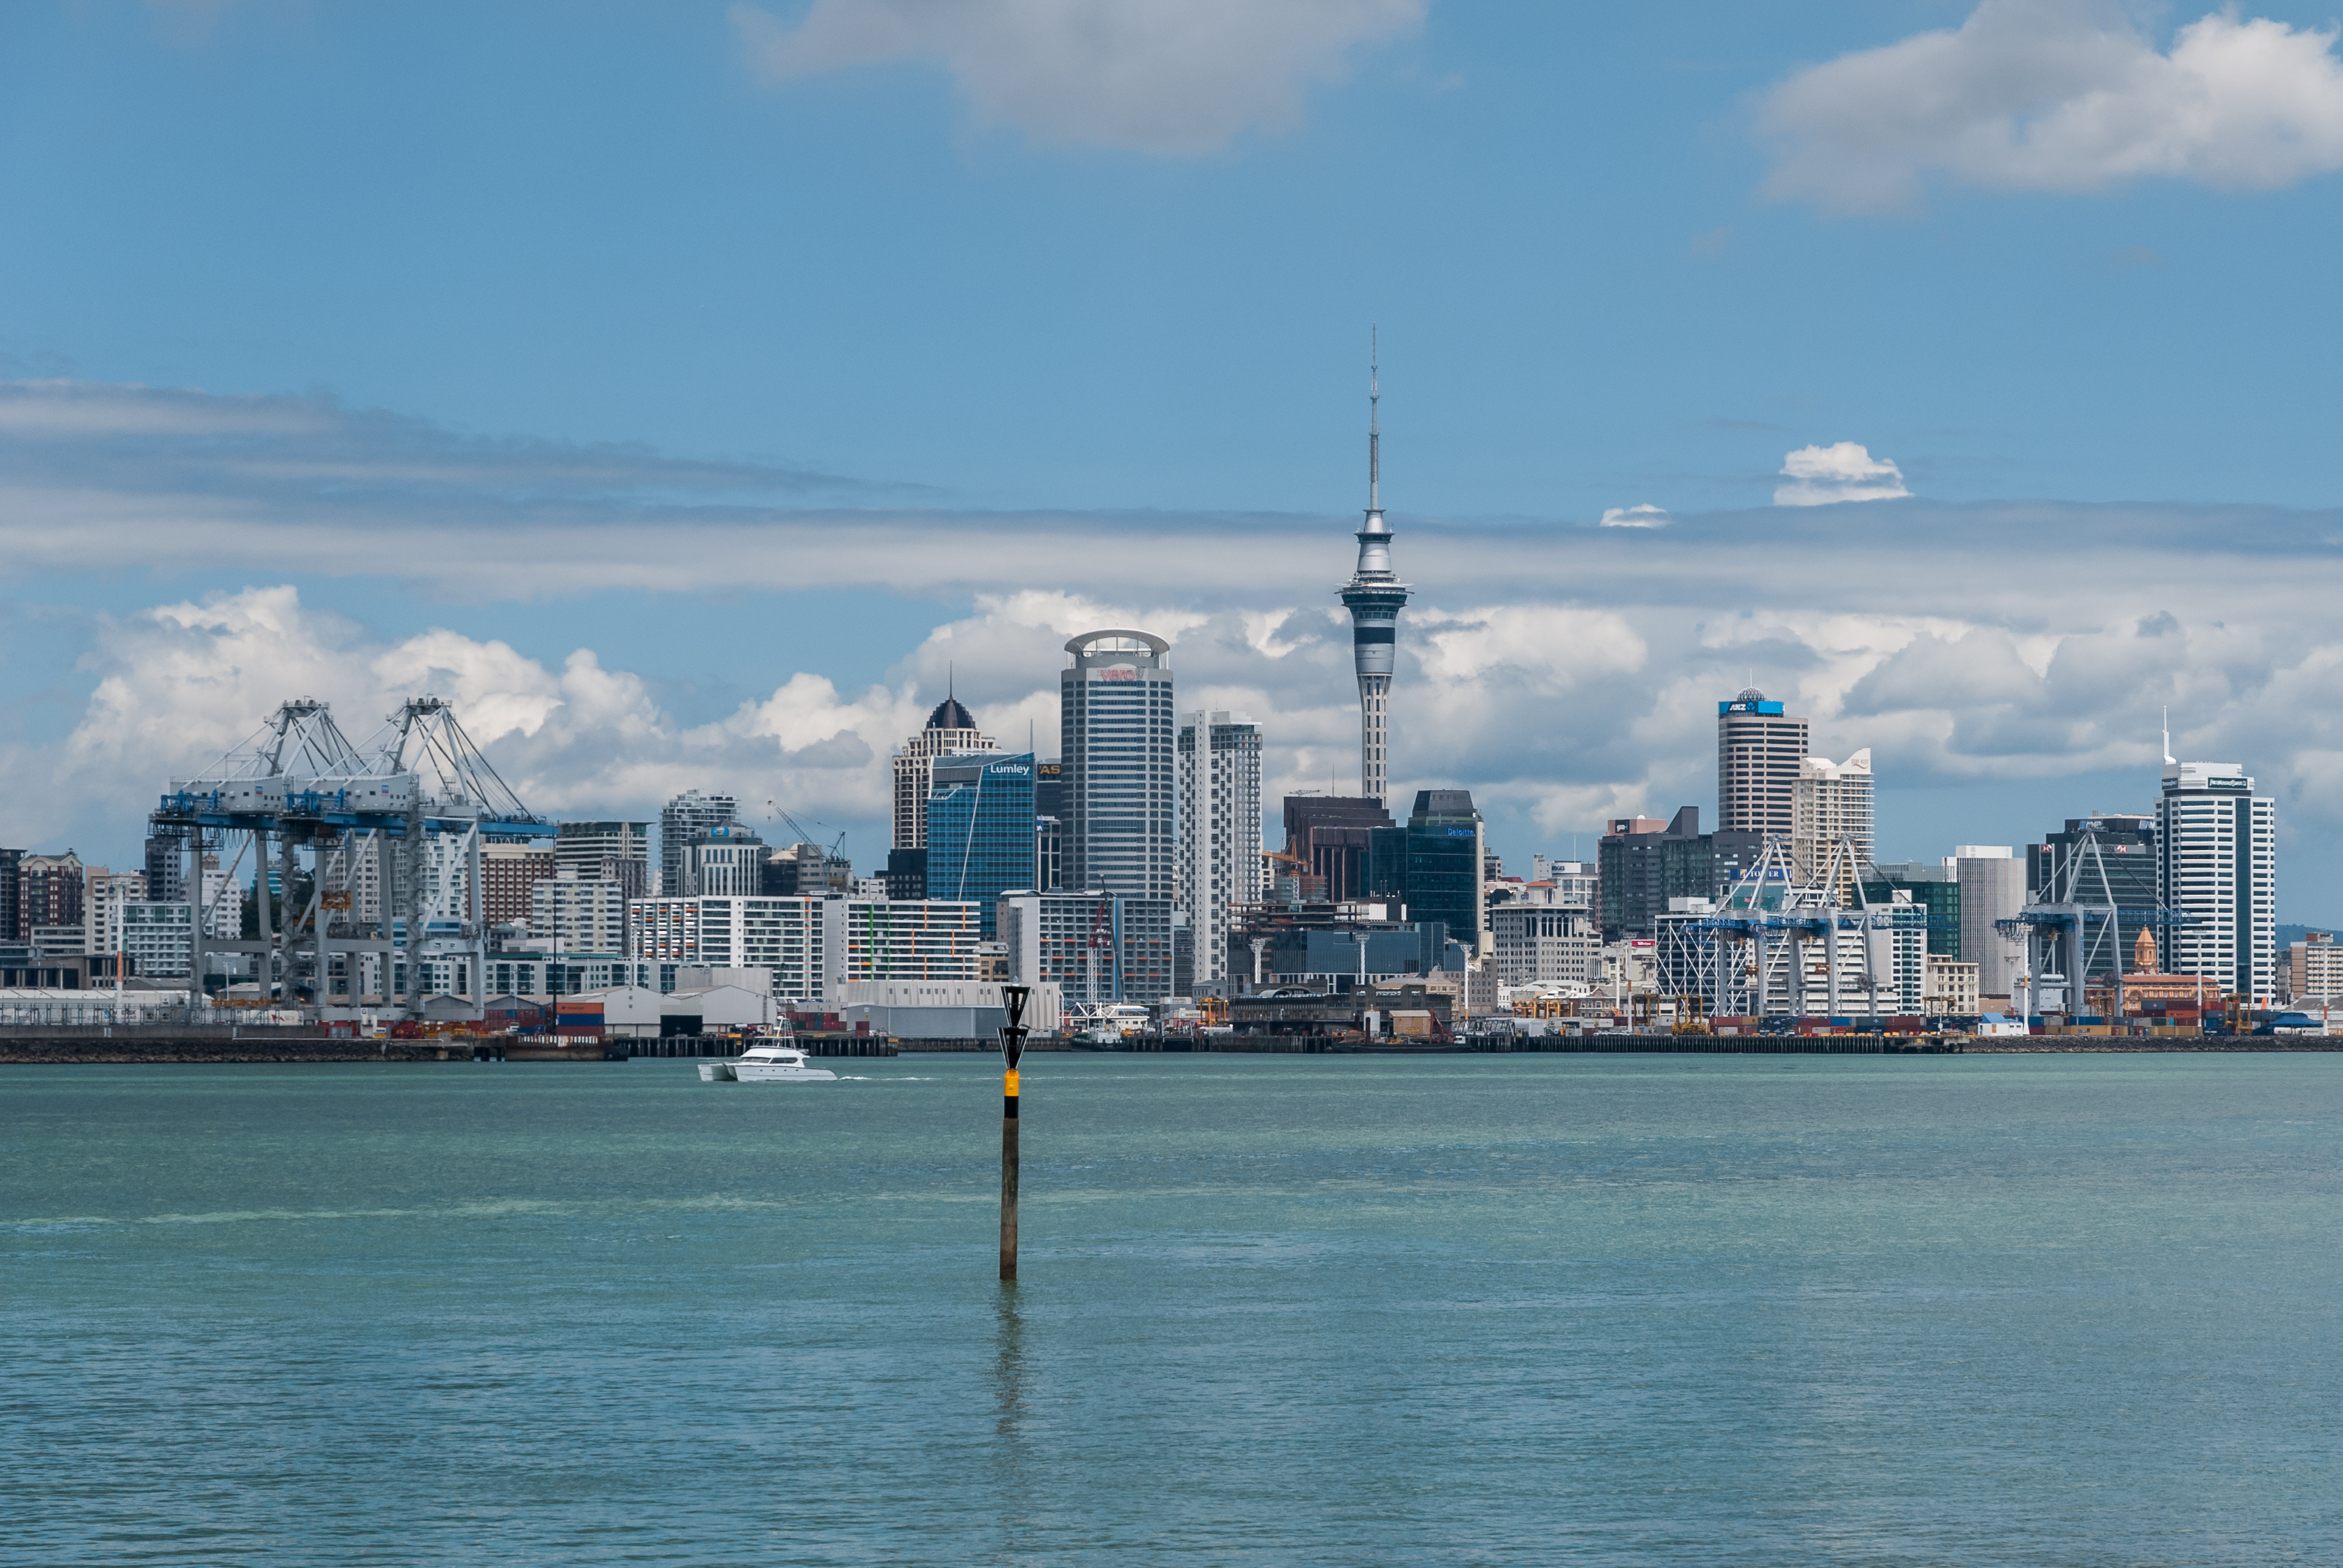 Home to New Zealand's largest city, the Auckland region has a diverse tourism industry.